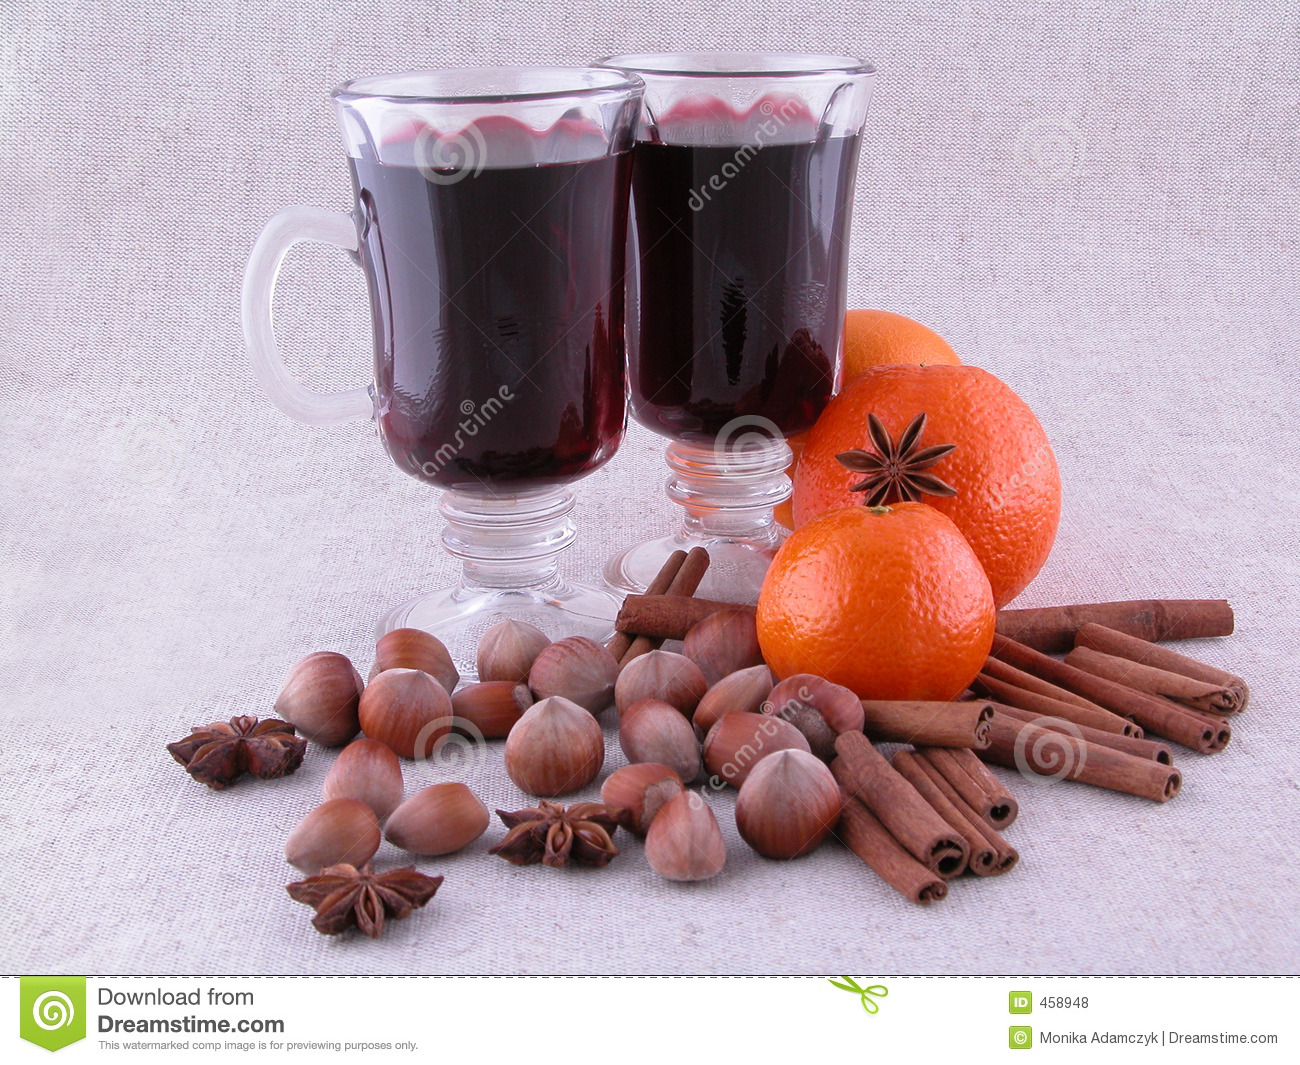 Download Hot wine stock photo. Image of cinnamon, beverages, fruits - 458948